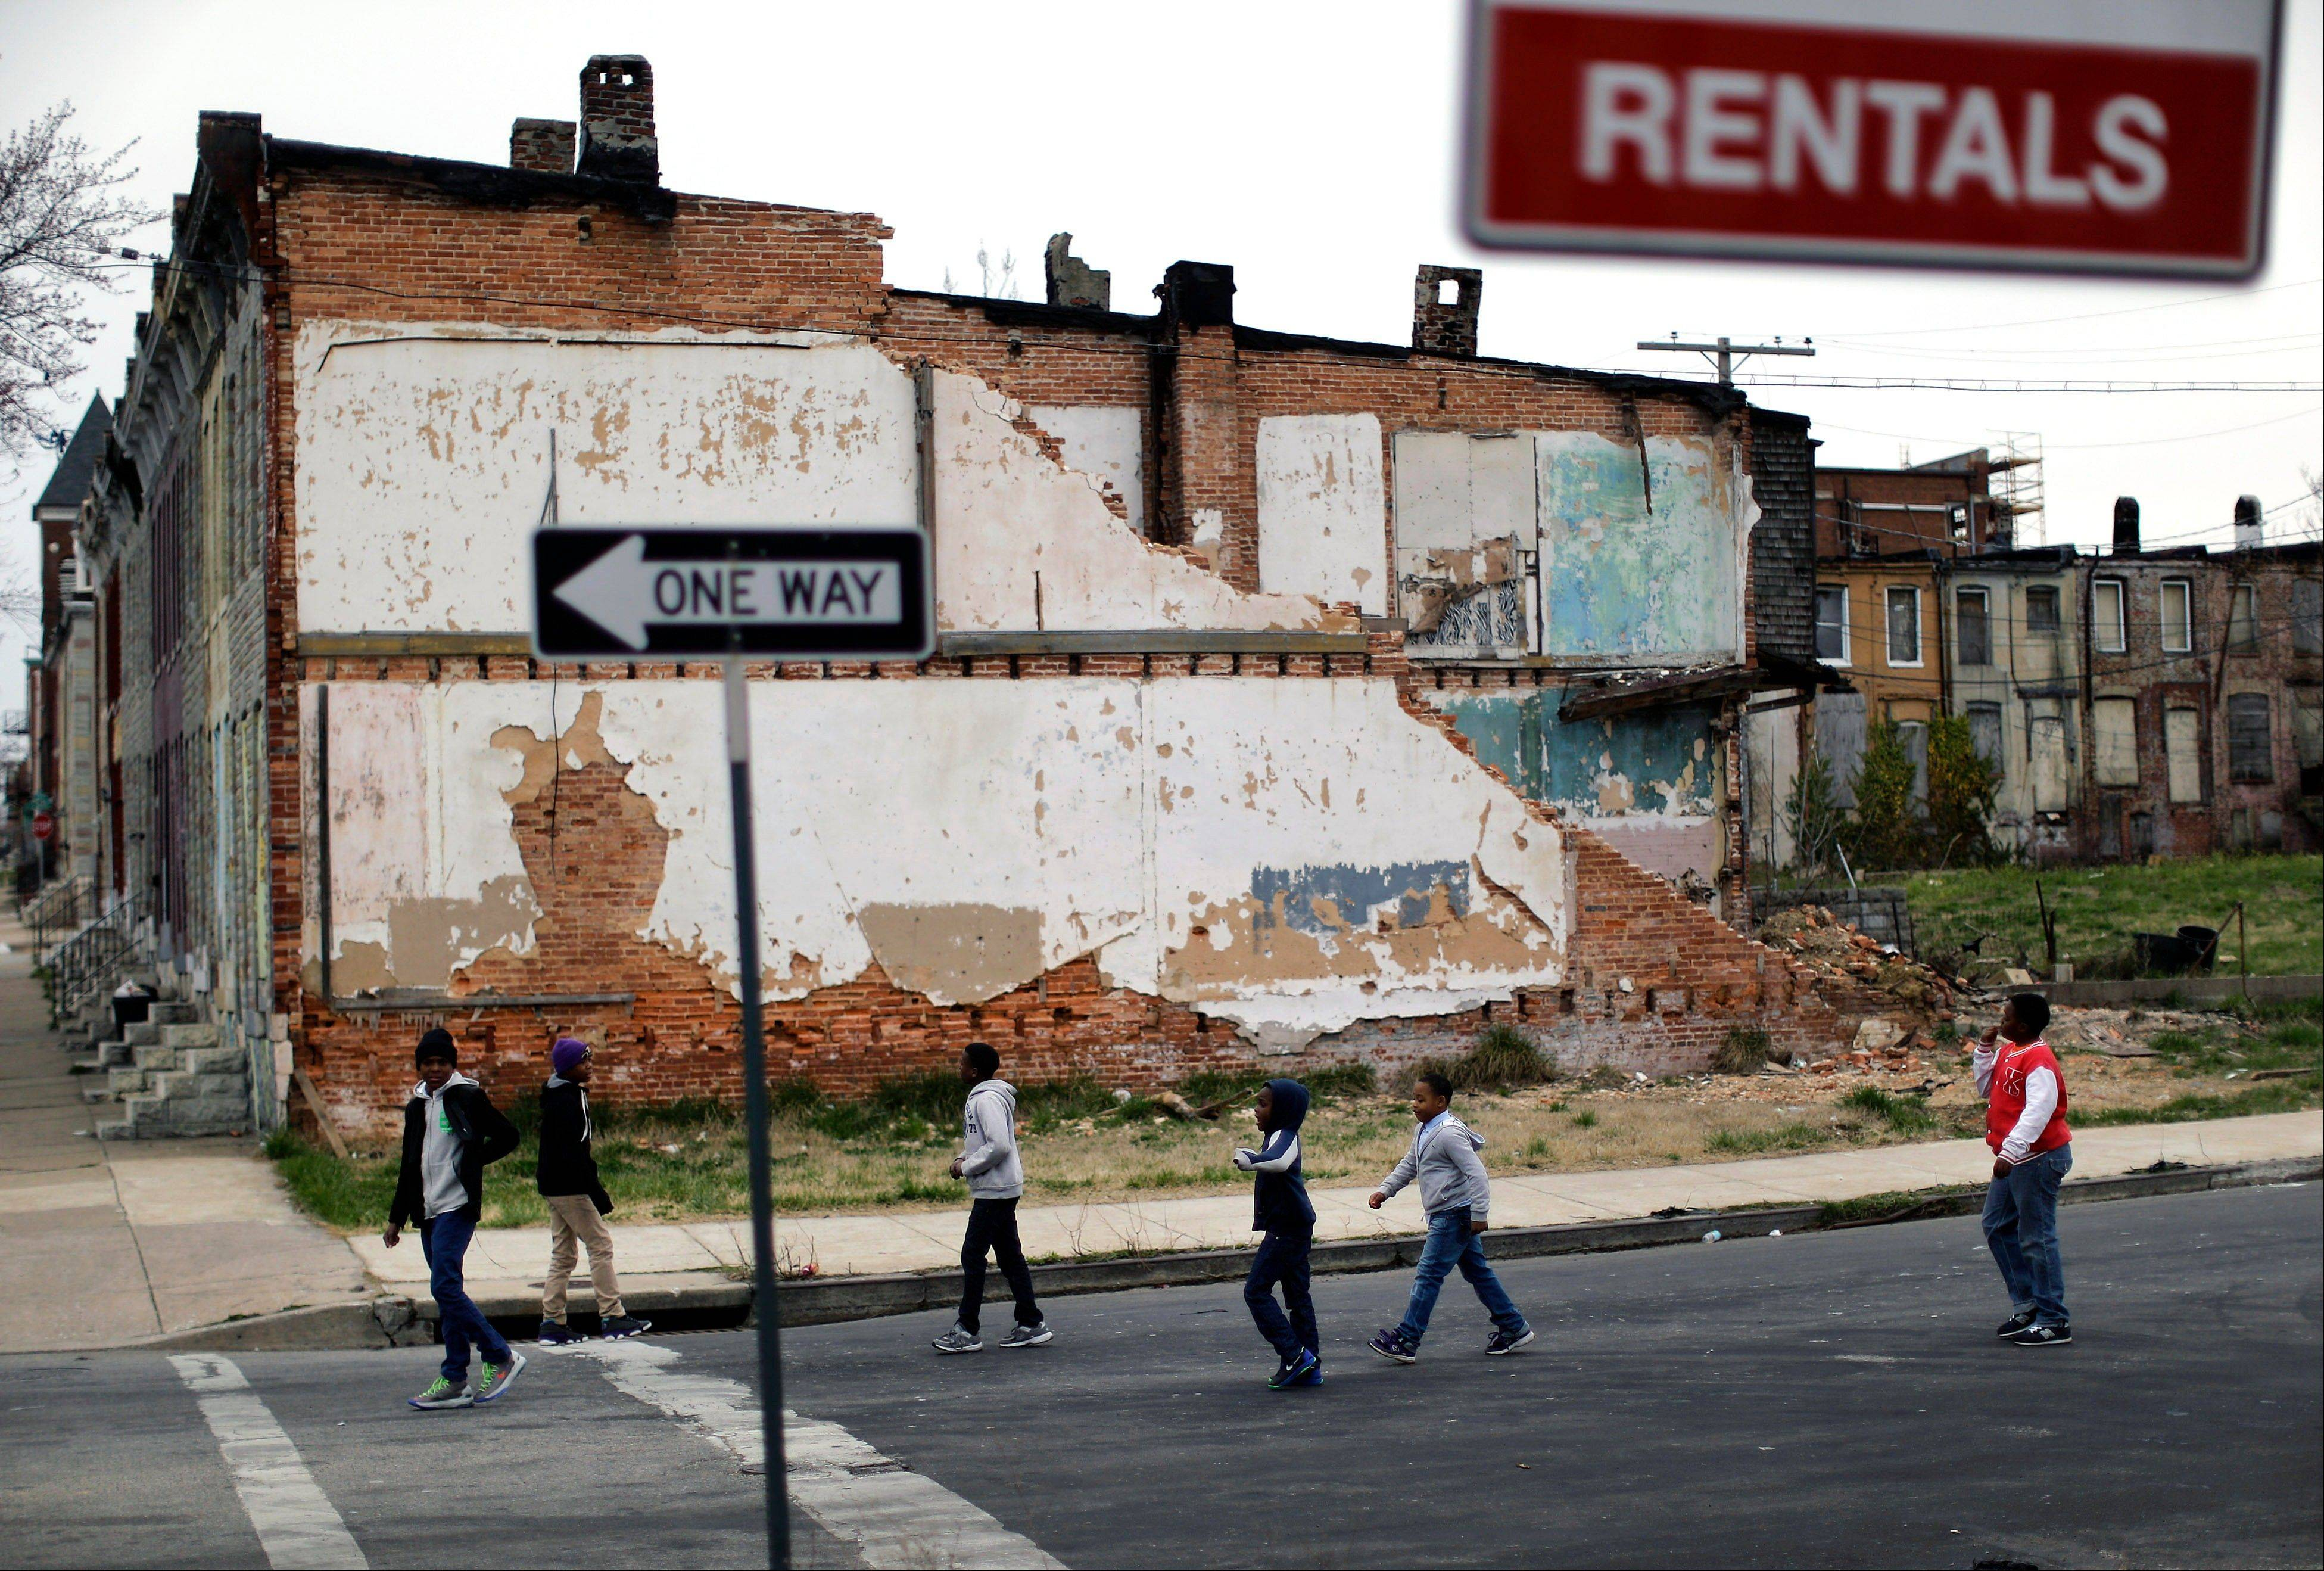 A group of boys walk past a partially collapsed row house in Baltimore. The nation's poverty rate stood still at 15 percent in 2012, the sixth straight year that it has failed to improve. Even as the economy shows signs of improvement and poverty levels off, new U.S. census data suggests the gains are halting and uneven. Depending on education, race, income and even marriage, not all segments of the population are seeing an economic turnaround.